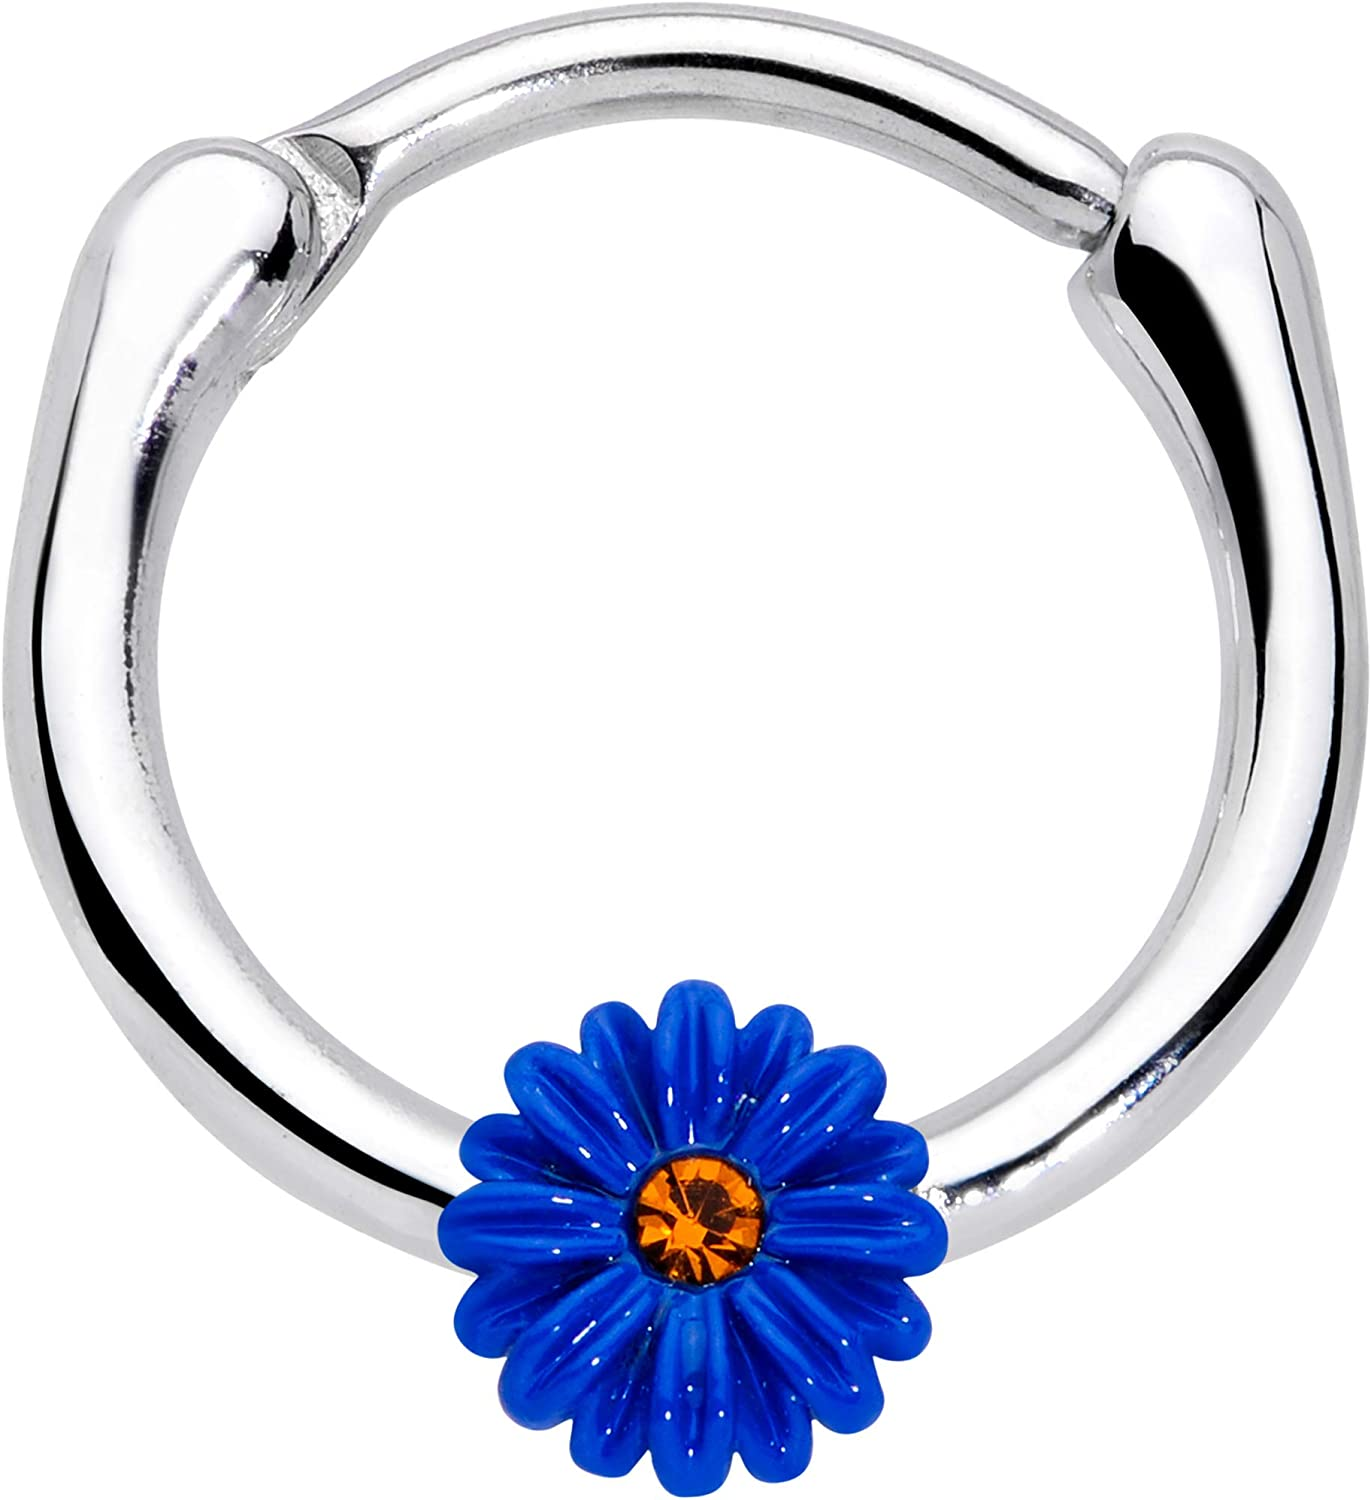 Body Candy 16G Womens Steel Septum Jewelry Yellow Accent Blue Sunflower Daith Tragus Cartilage Clicker 3/8